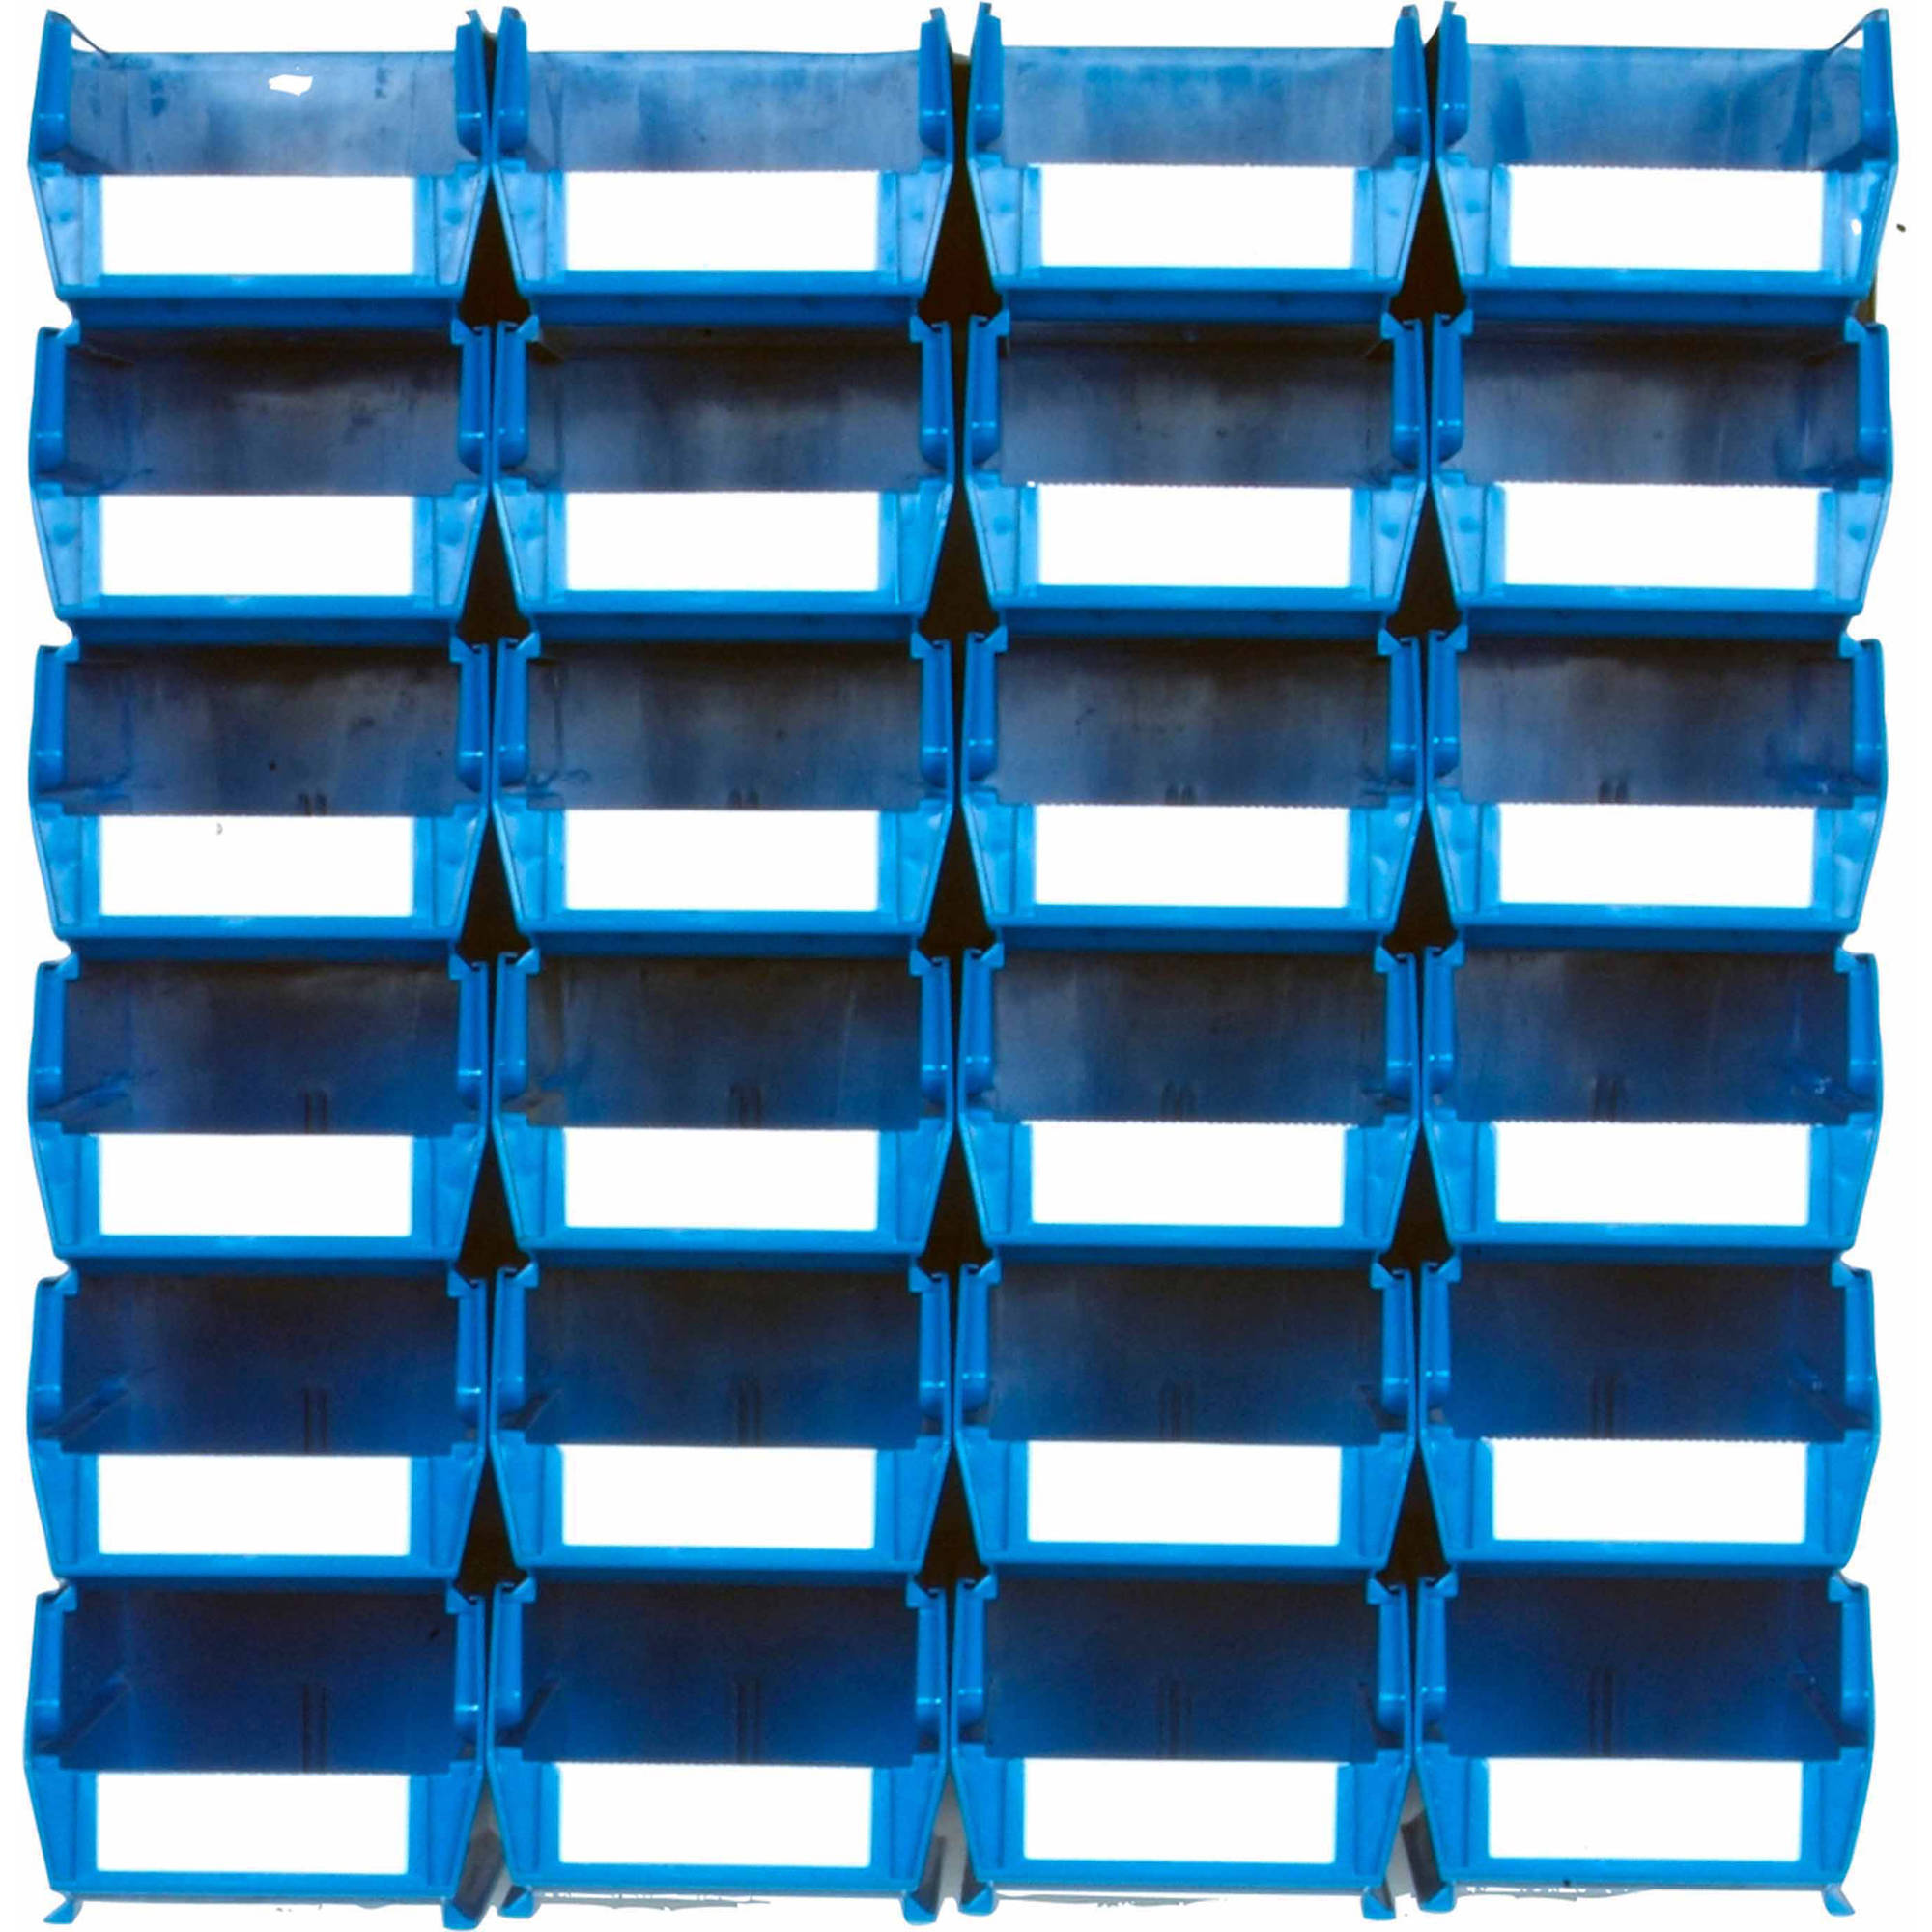 "LocBin 26-Piece Wall Storage Unit with 7-3/8""L x 4-1/8""W x 3""H Interlocking Poly Bins, 24ct, Wall Mount Rails 8-3/4""L with Hardware, 2pk"